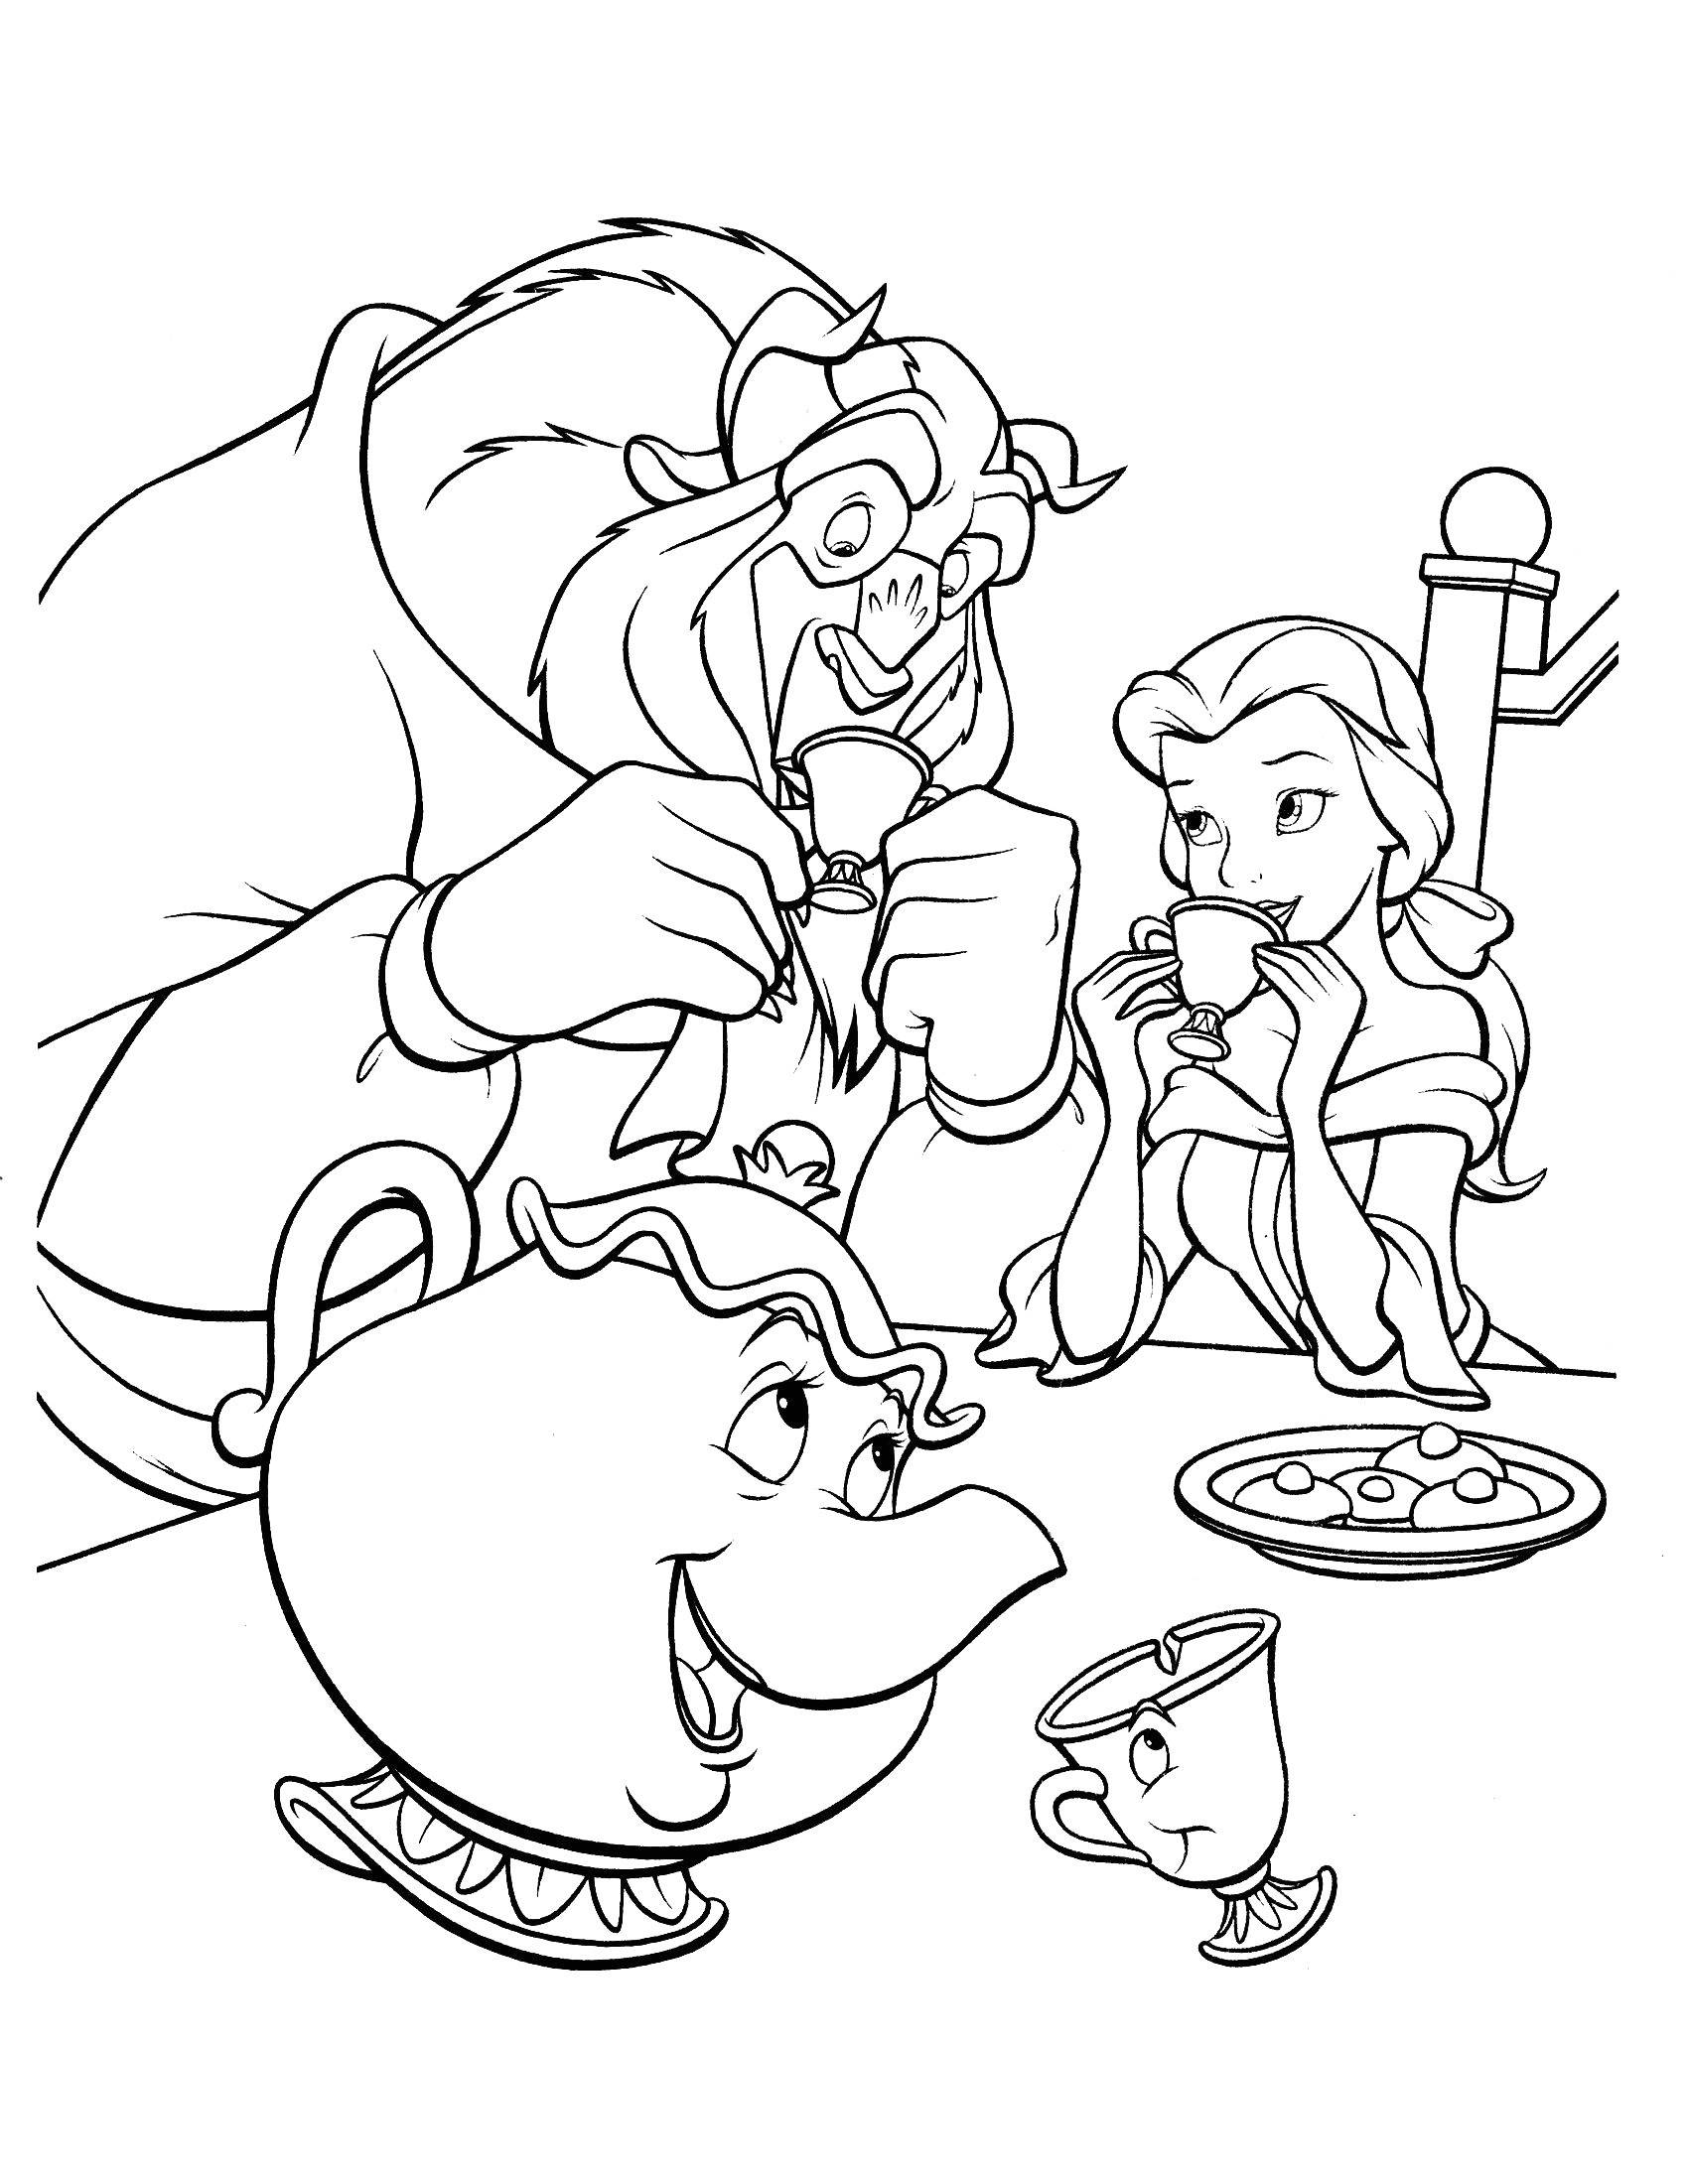 Beauty and the Beast Coloring Pages to Print Beauty and the Beast Coloring Pages and Book